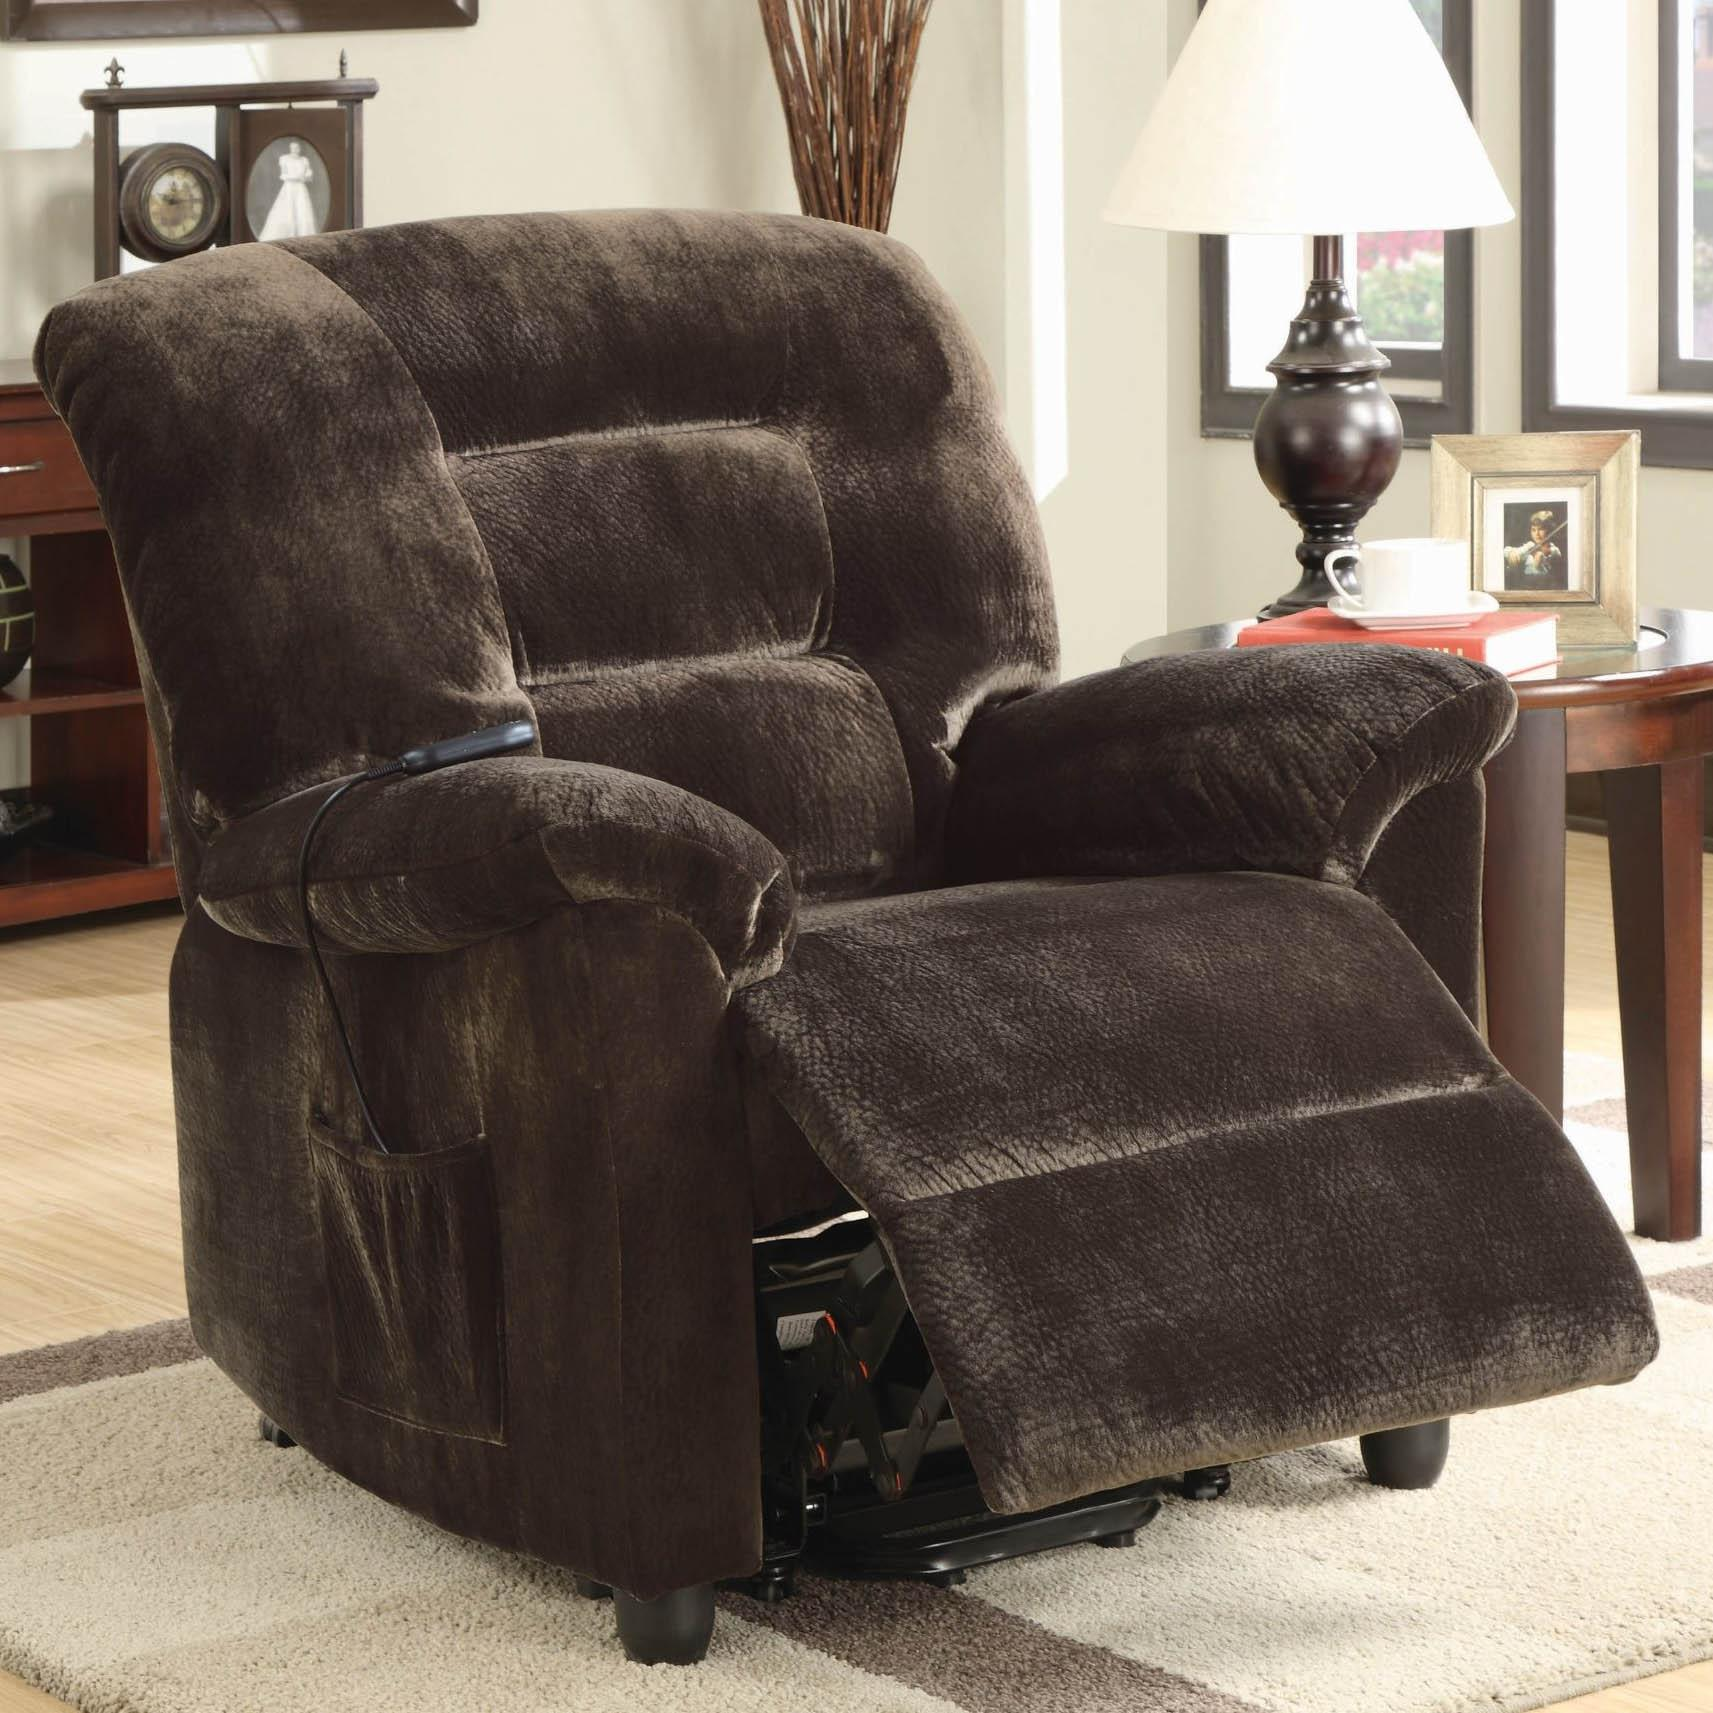 Coaster Recliners Casual Power Lift Recliner In Chocolate